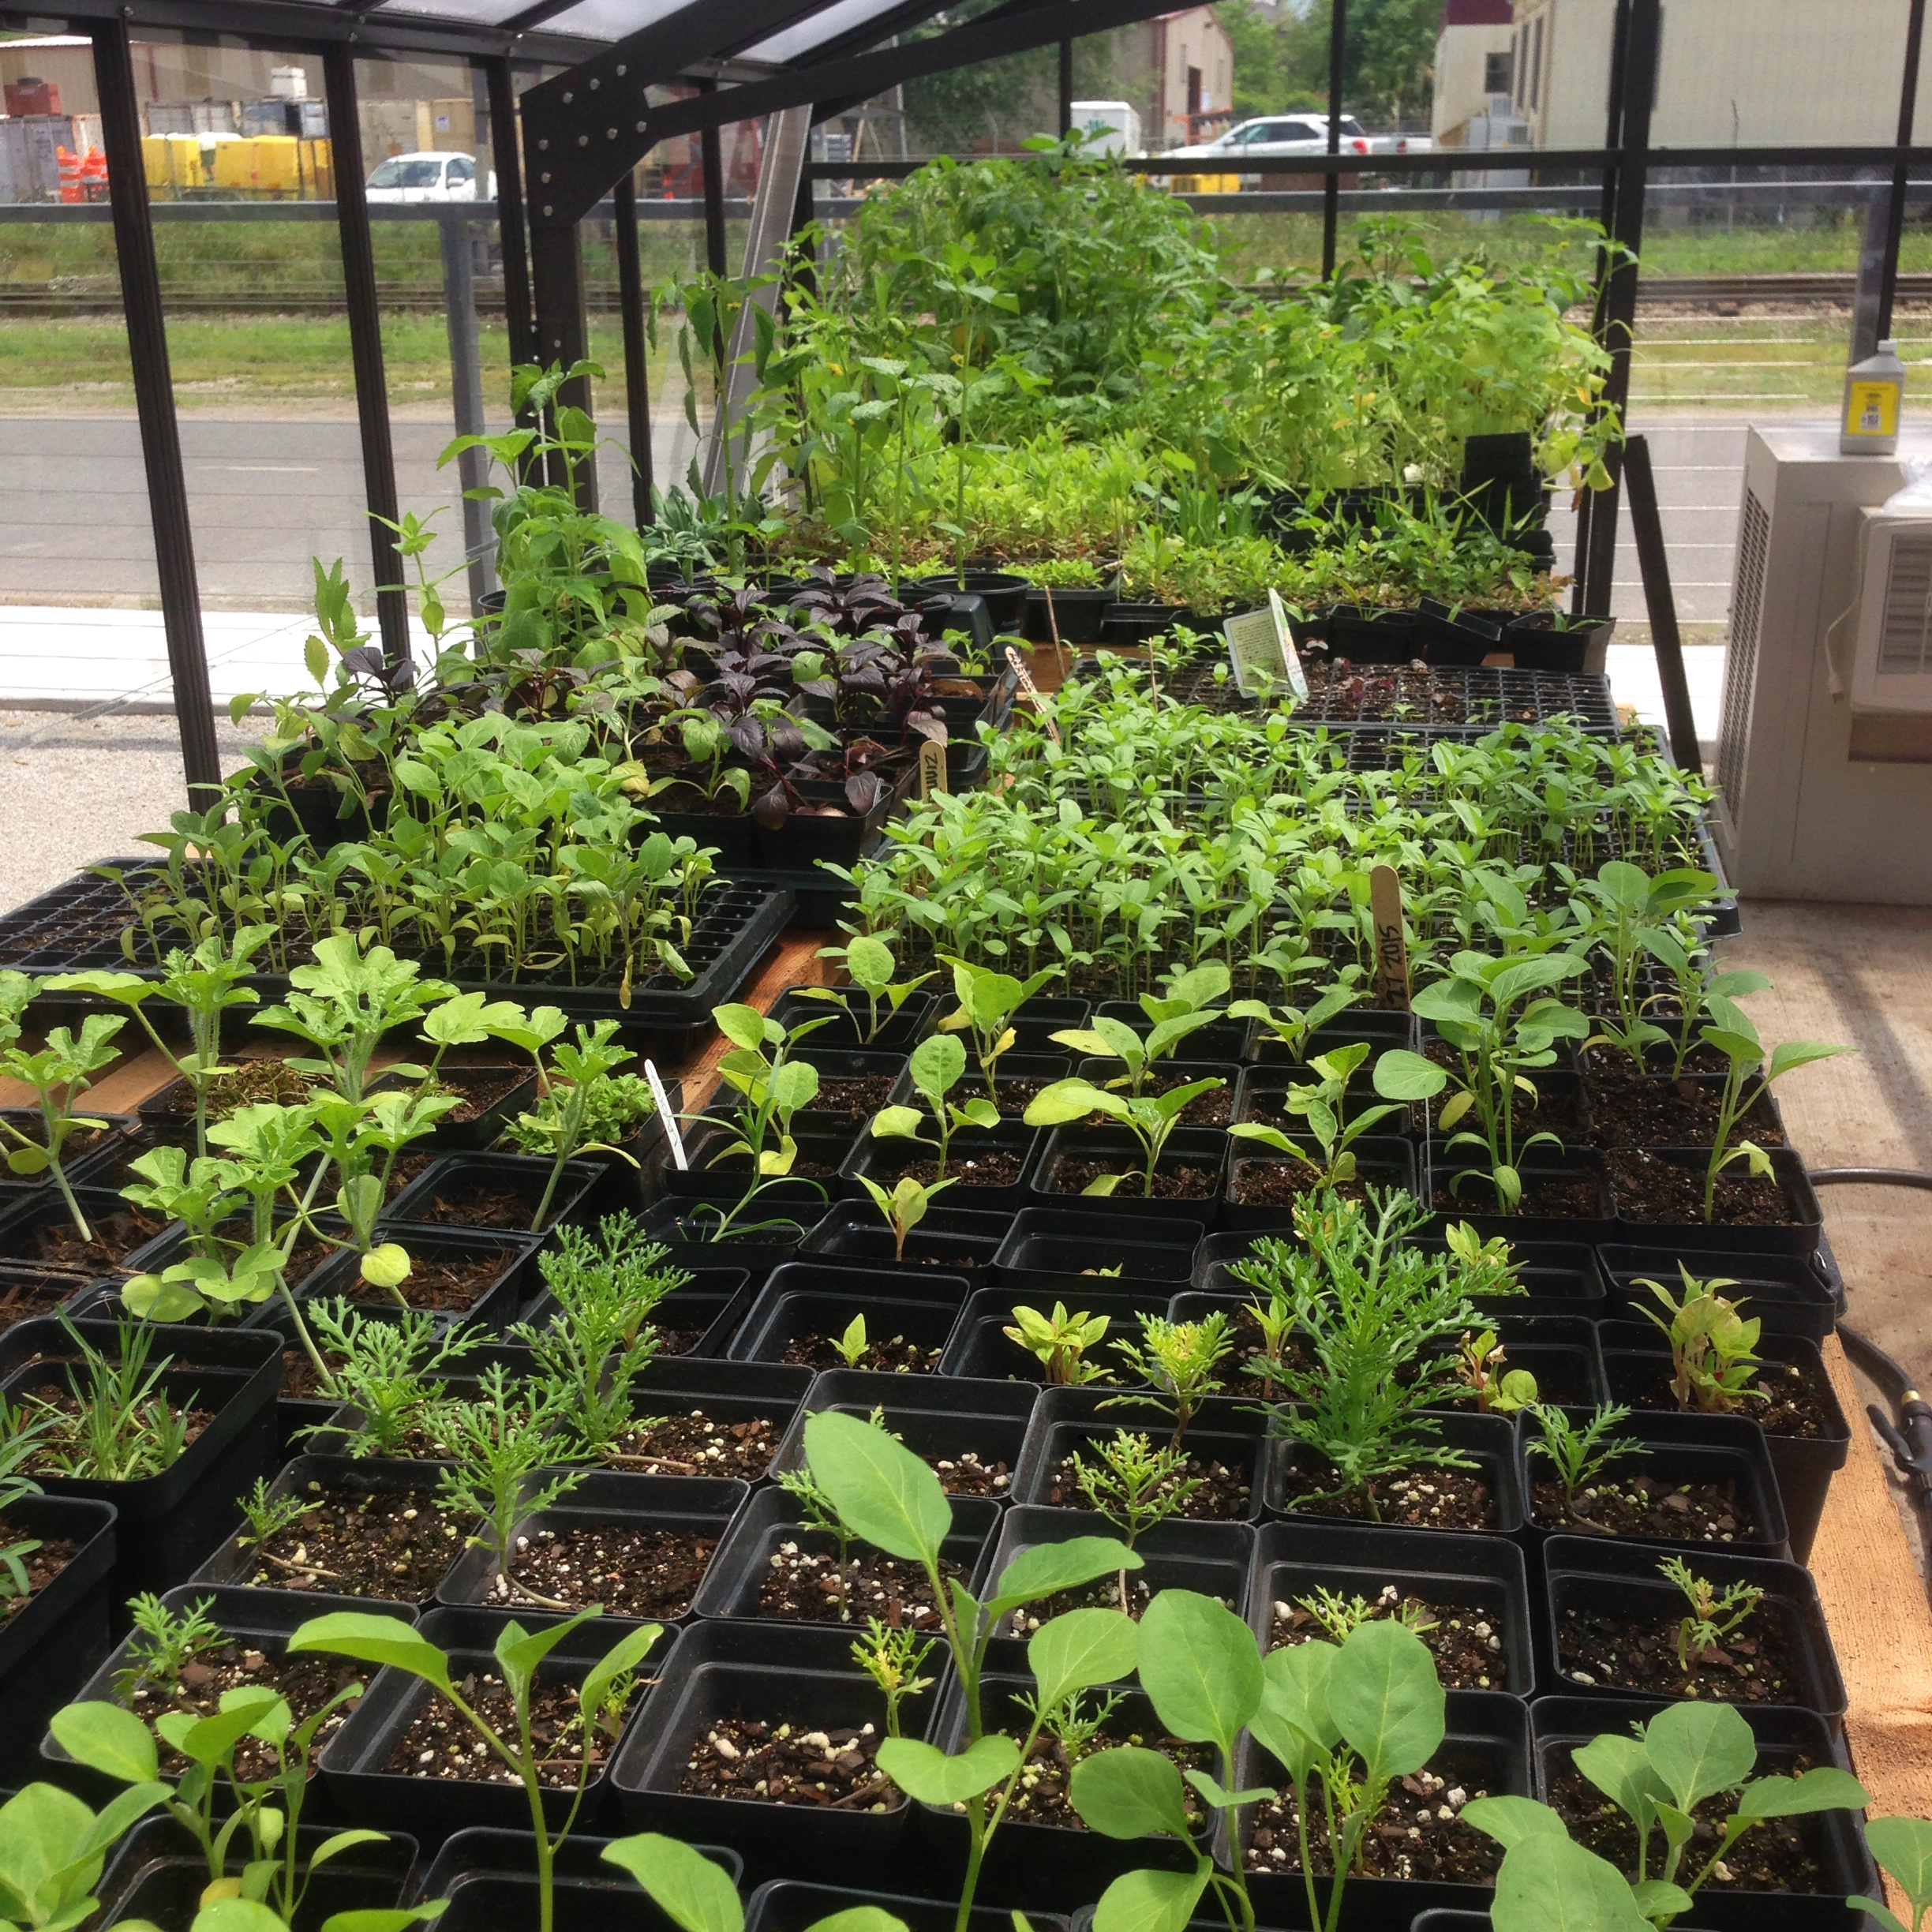 March 24: Spring plant sale with heirlooms and rare varieties!